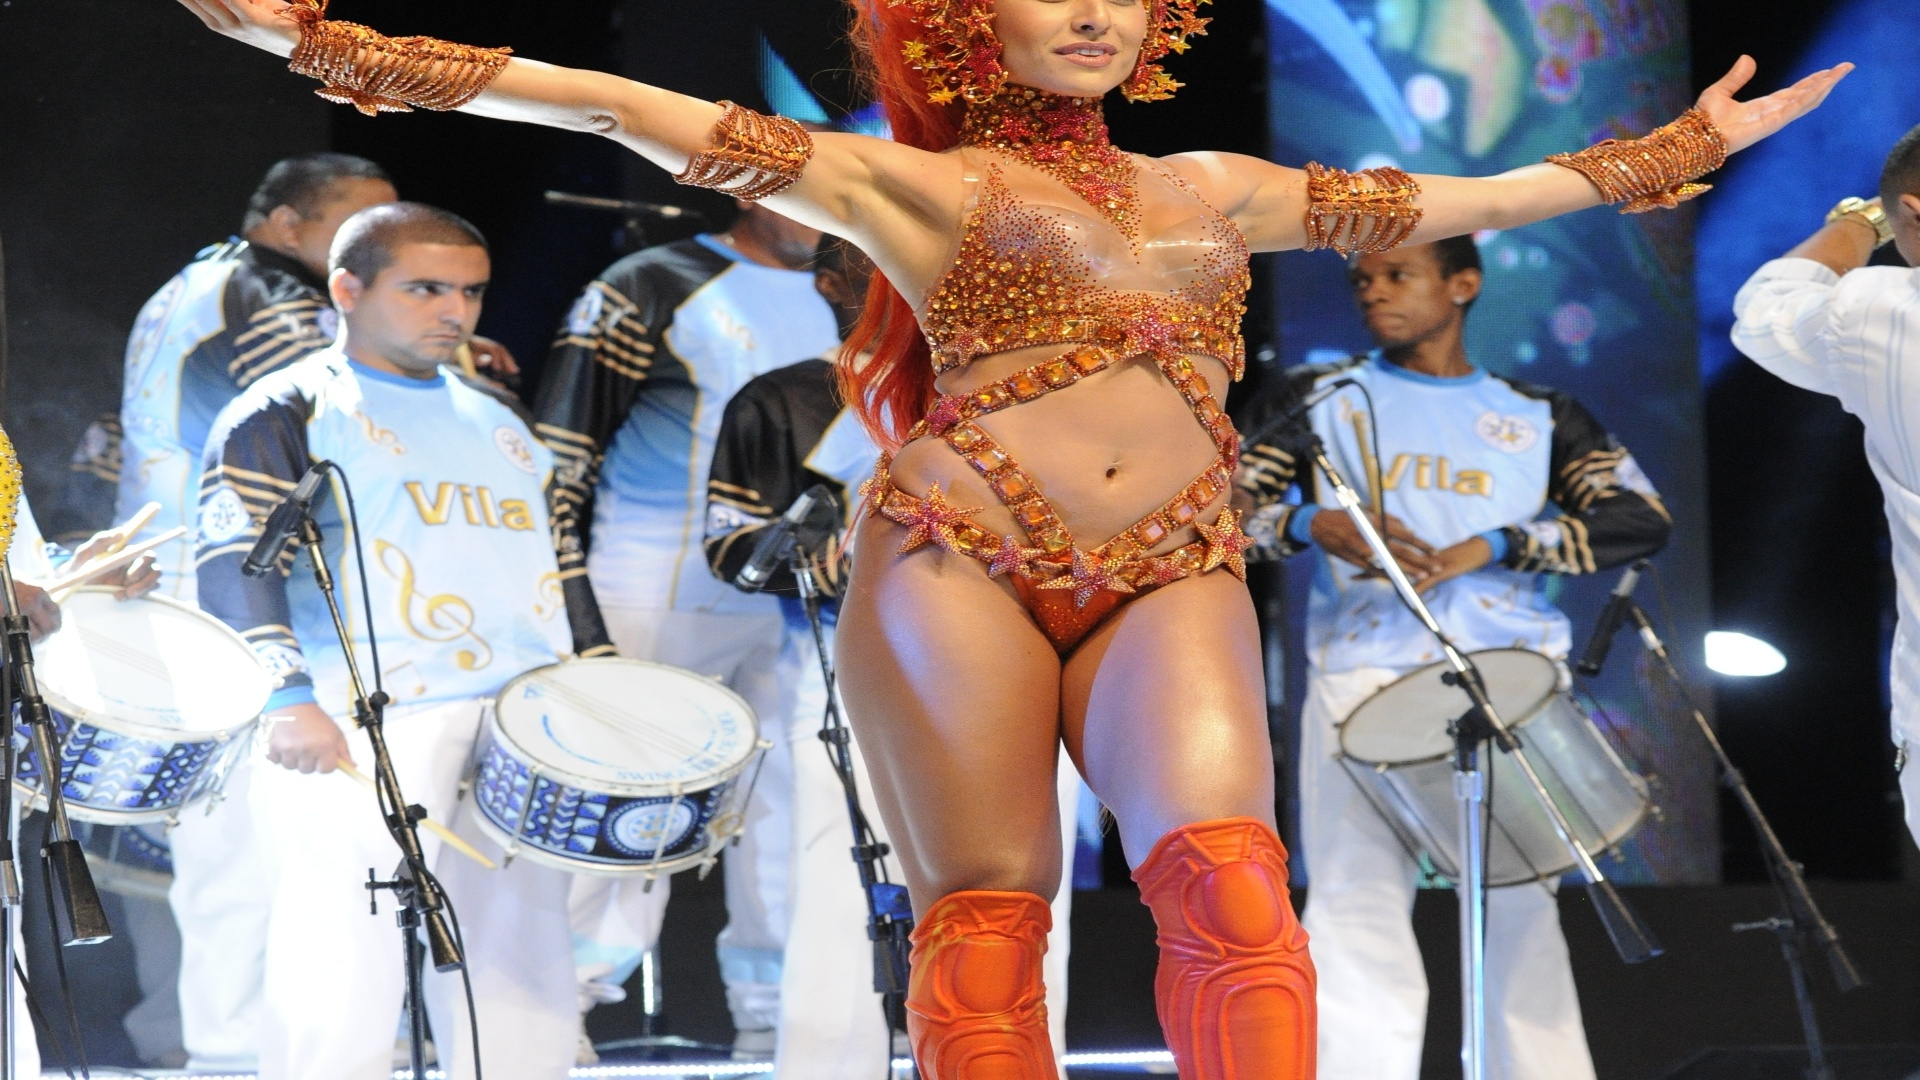 Rainha de bateria da Unidos de Vila Isabel, Sabrina Sato tambm faz parte do Carnaval paulista como madrinha da Gavies da Fiel (5/12/12)